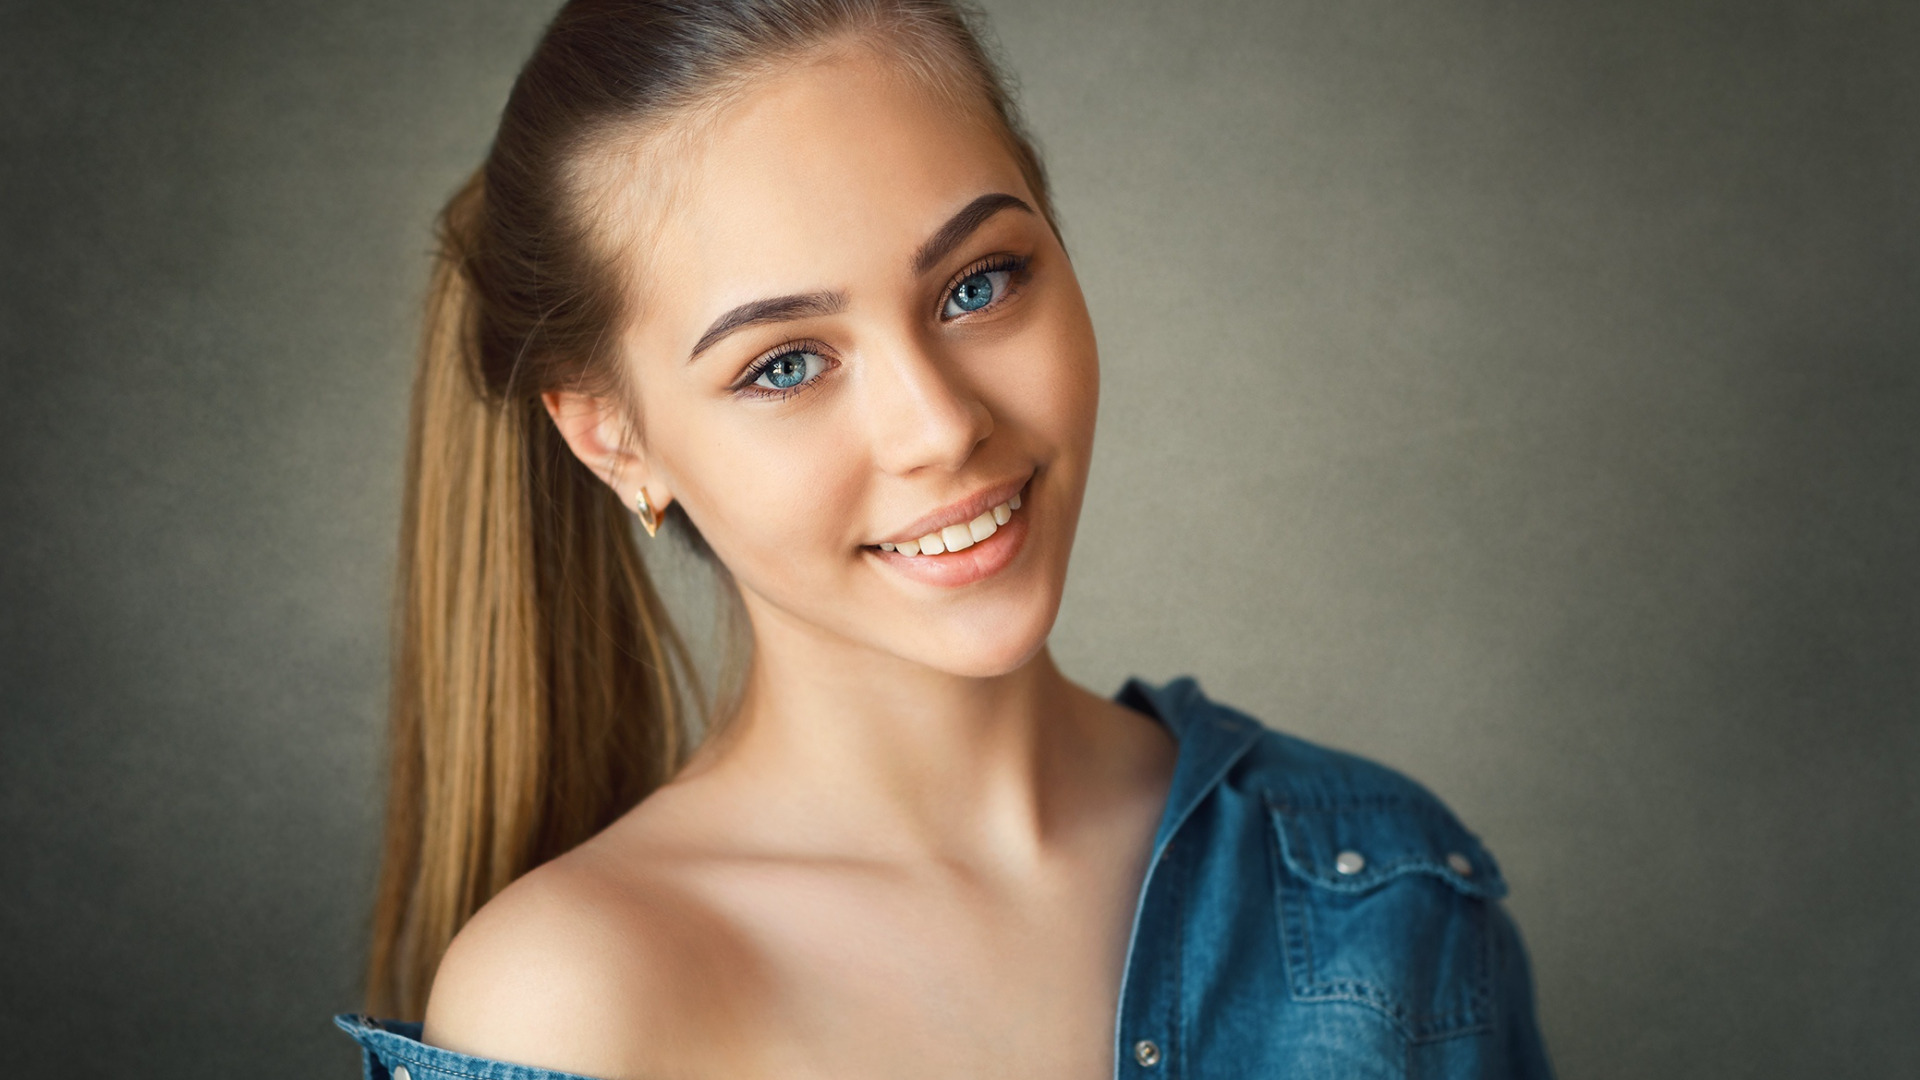 People 1920x1080 women model blonde long hair smiling simple background women indoors blue eyes portrait bare shoulders ponytail face teeth happy jeans shirt Nikolay Konarev Sonia Smyslova Nick Konar Sonia young woman jeans